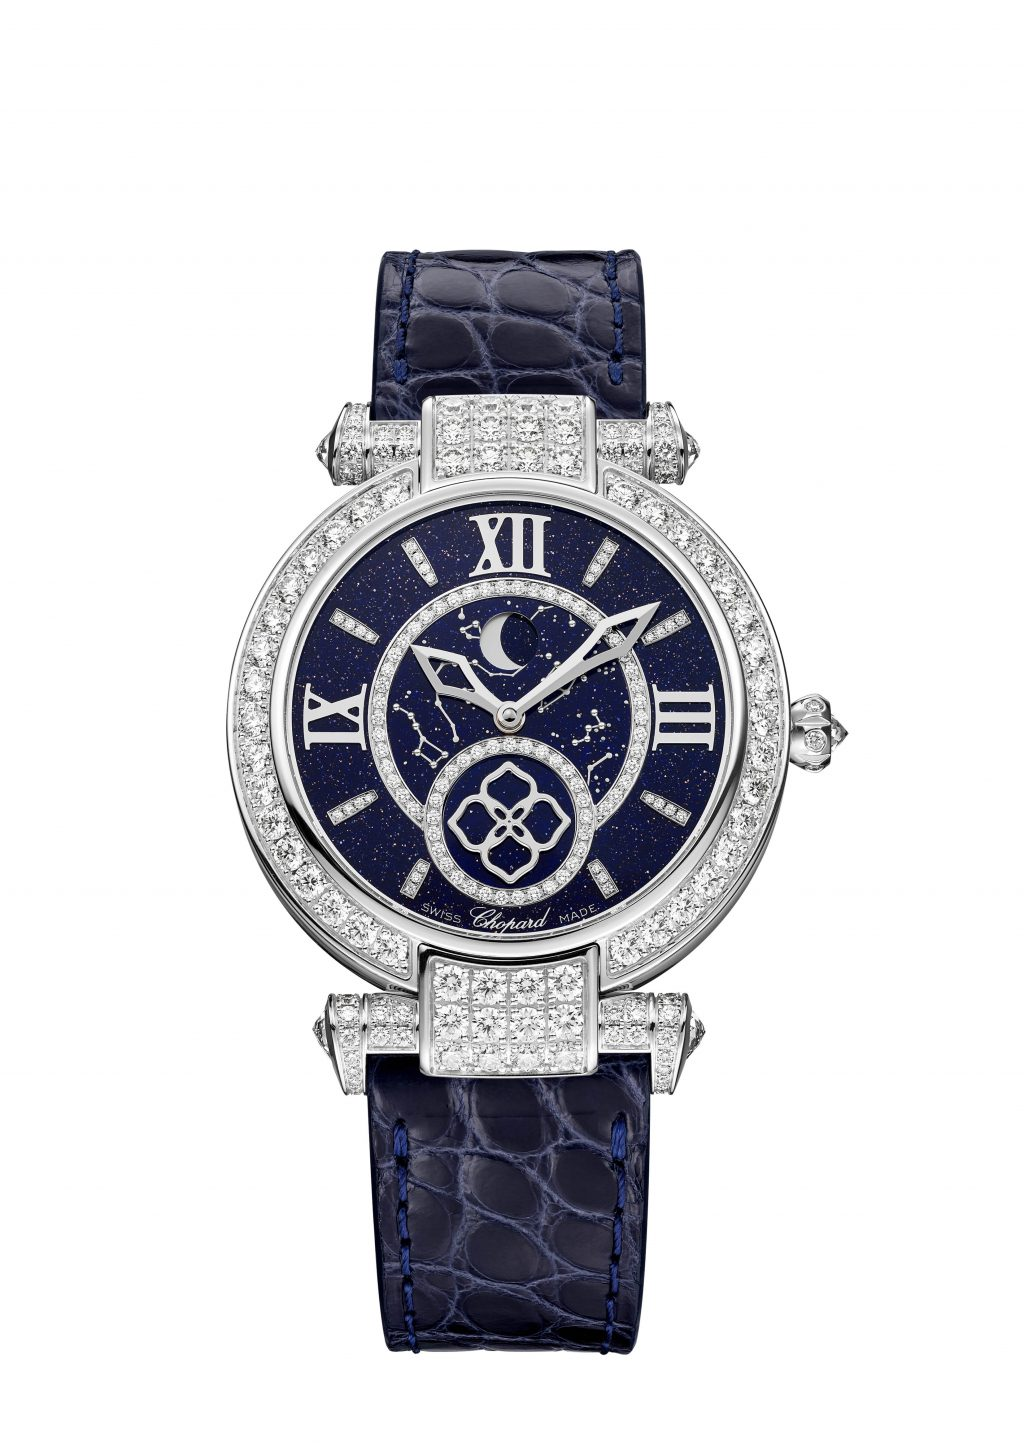 Chopard 'Imperiale Moon Phase' watch